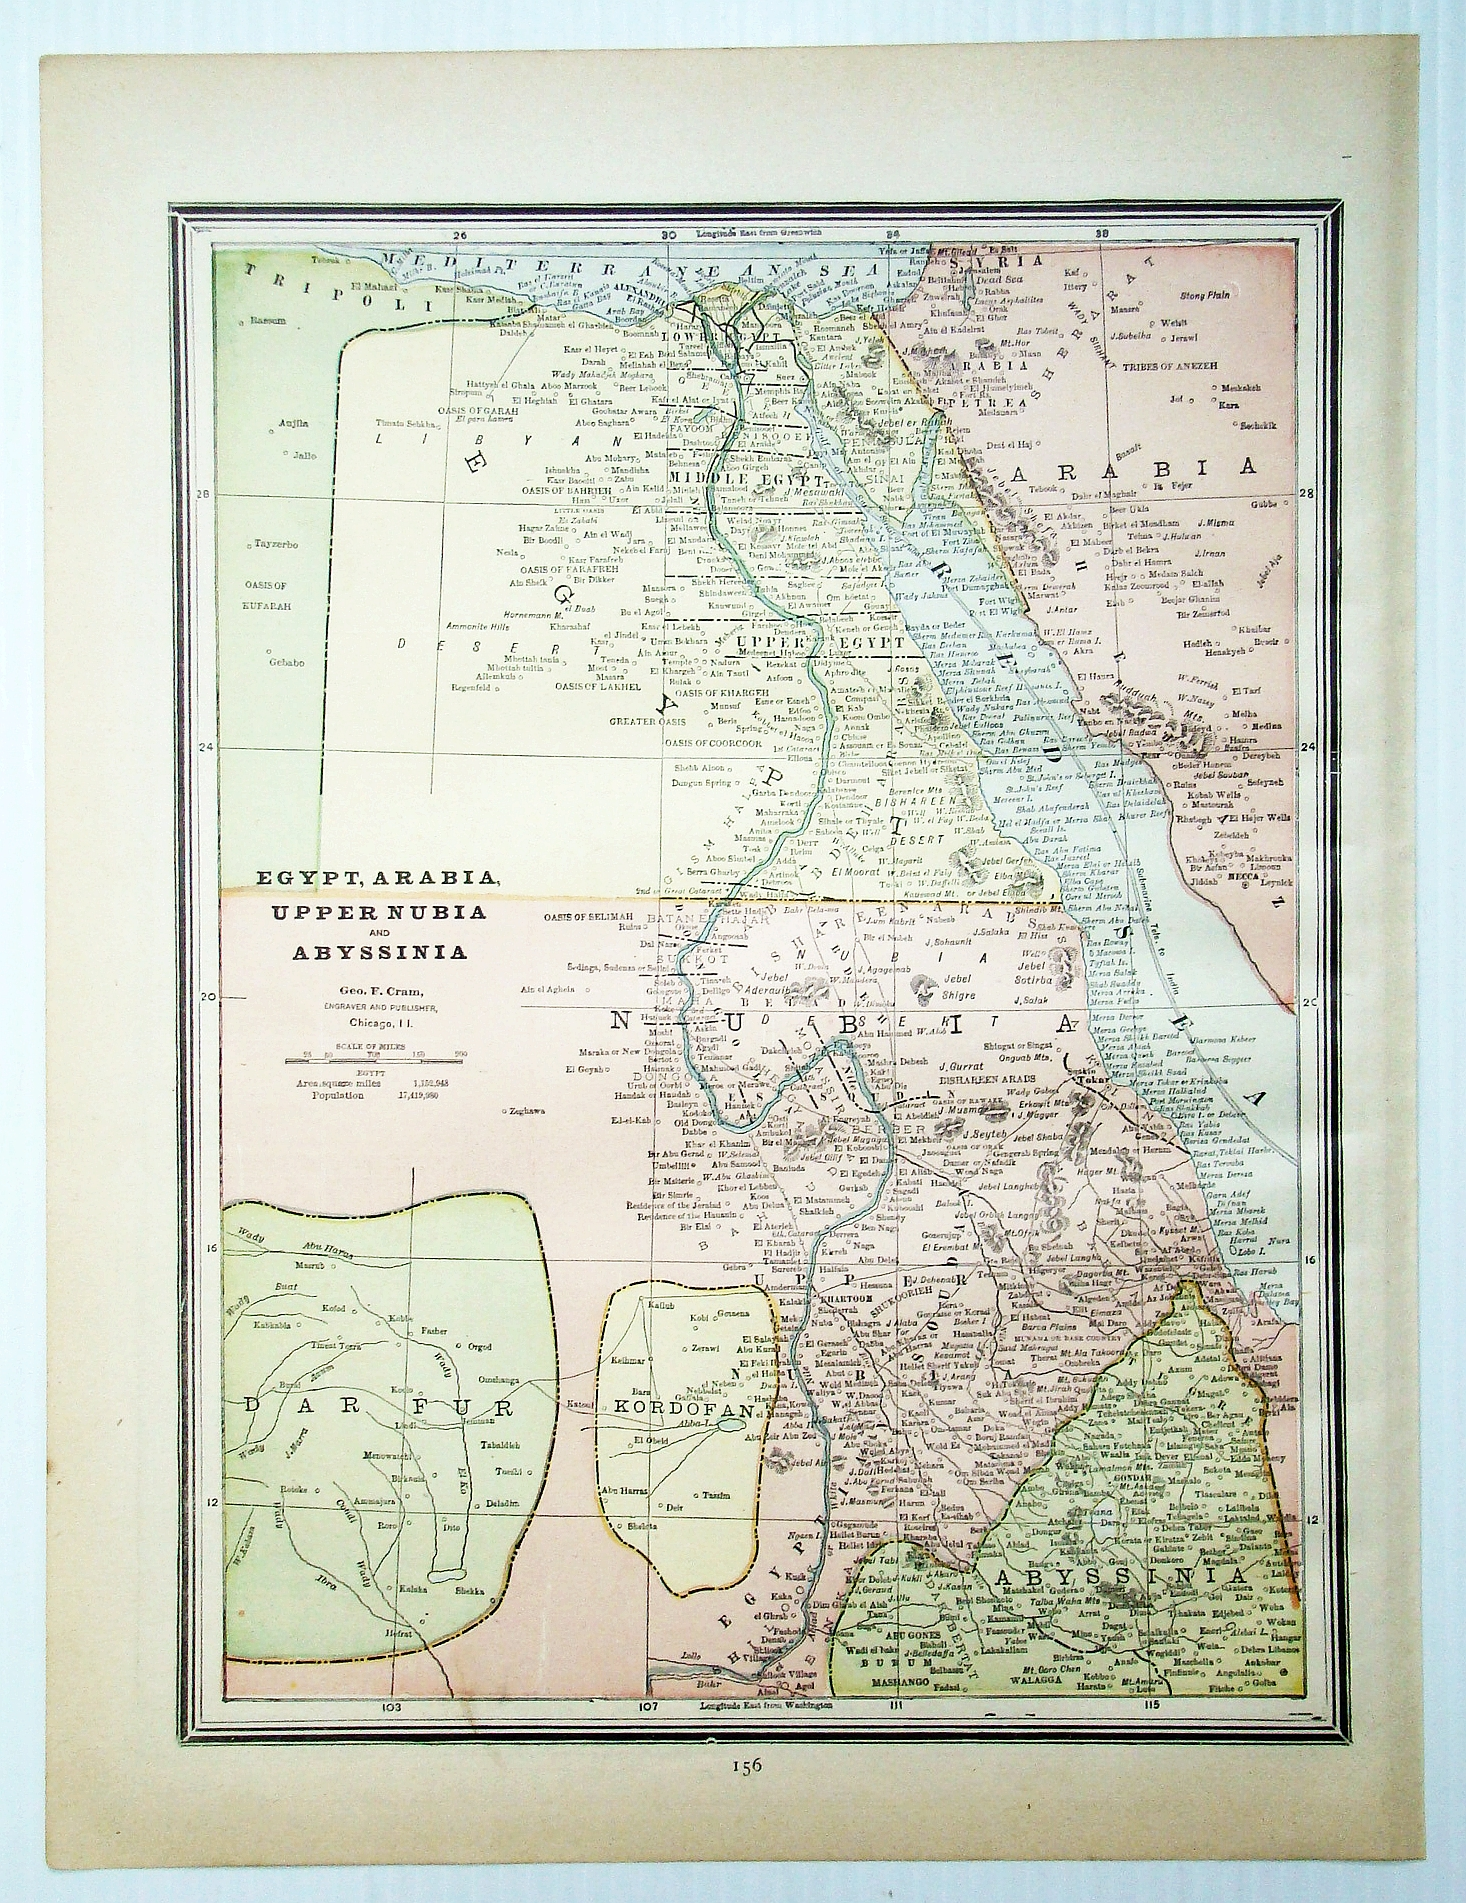 Image for 1889 Color Map of Egypt, Arabia, Upper Nubia and Abyssinia